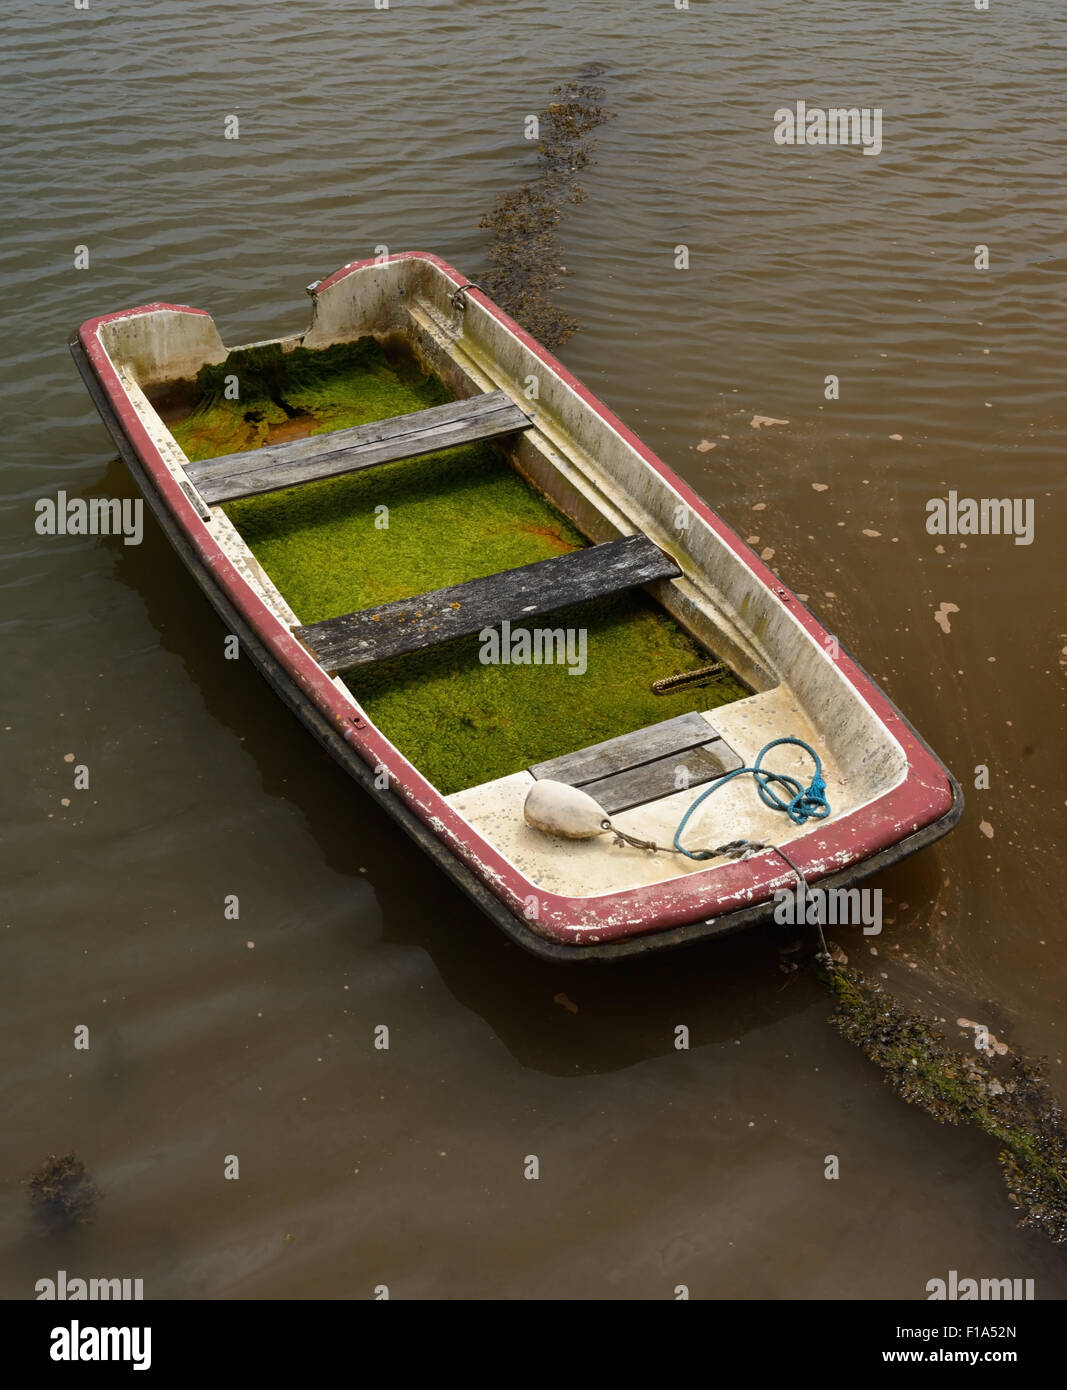 A dilapidated boat in need of some attention. - Stock Image